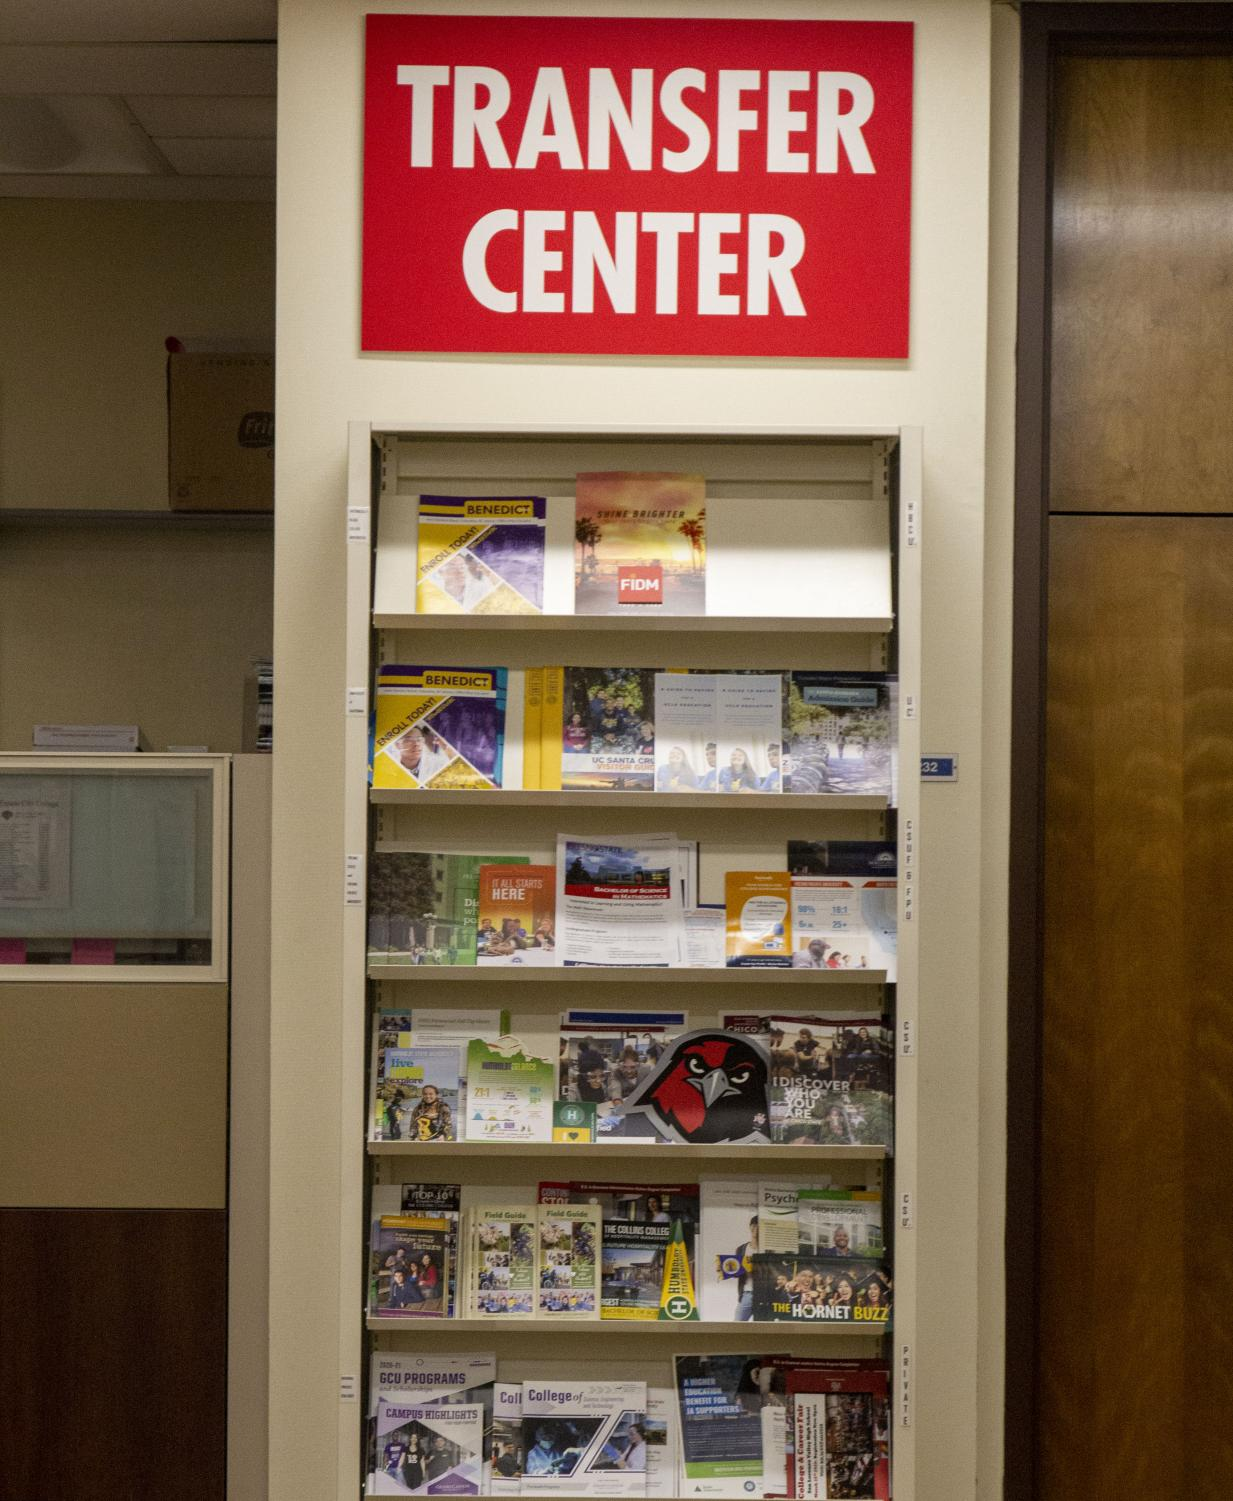 Information pamphlets and flyers sit at the Transfer Center on Tuesday, Feb. 11. The Transfer Center is located in the Student Services Building in ST-200